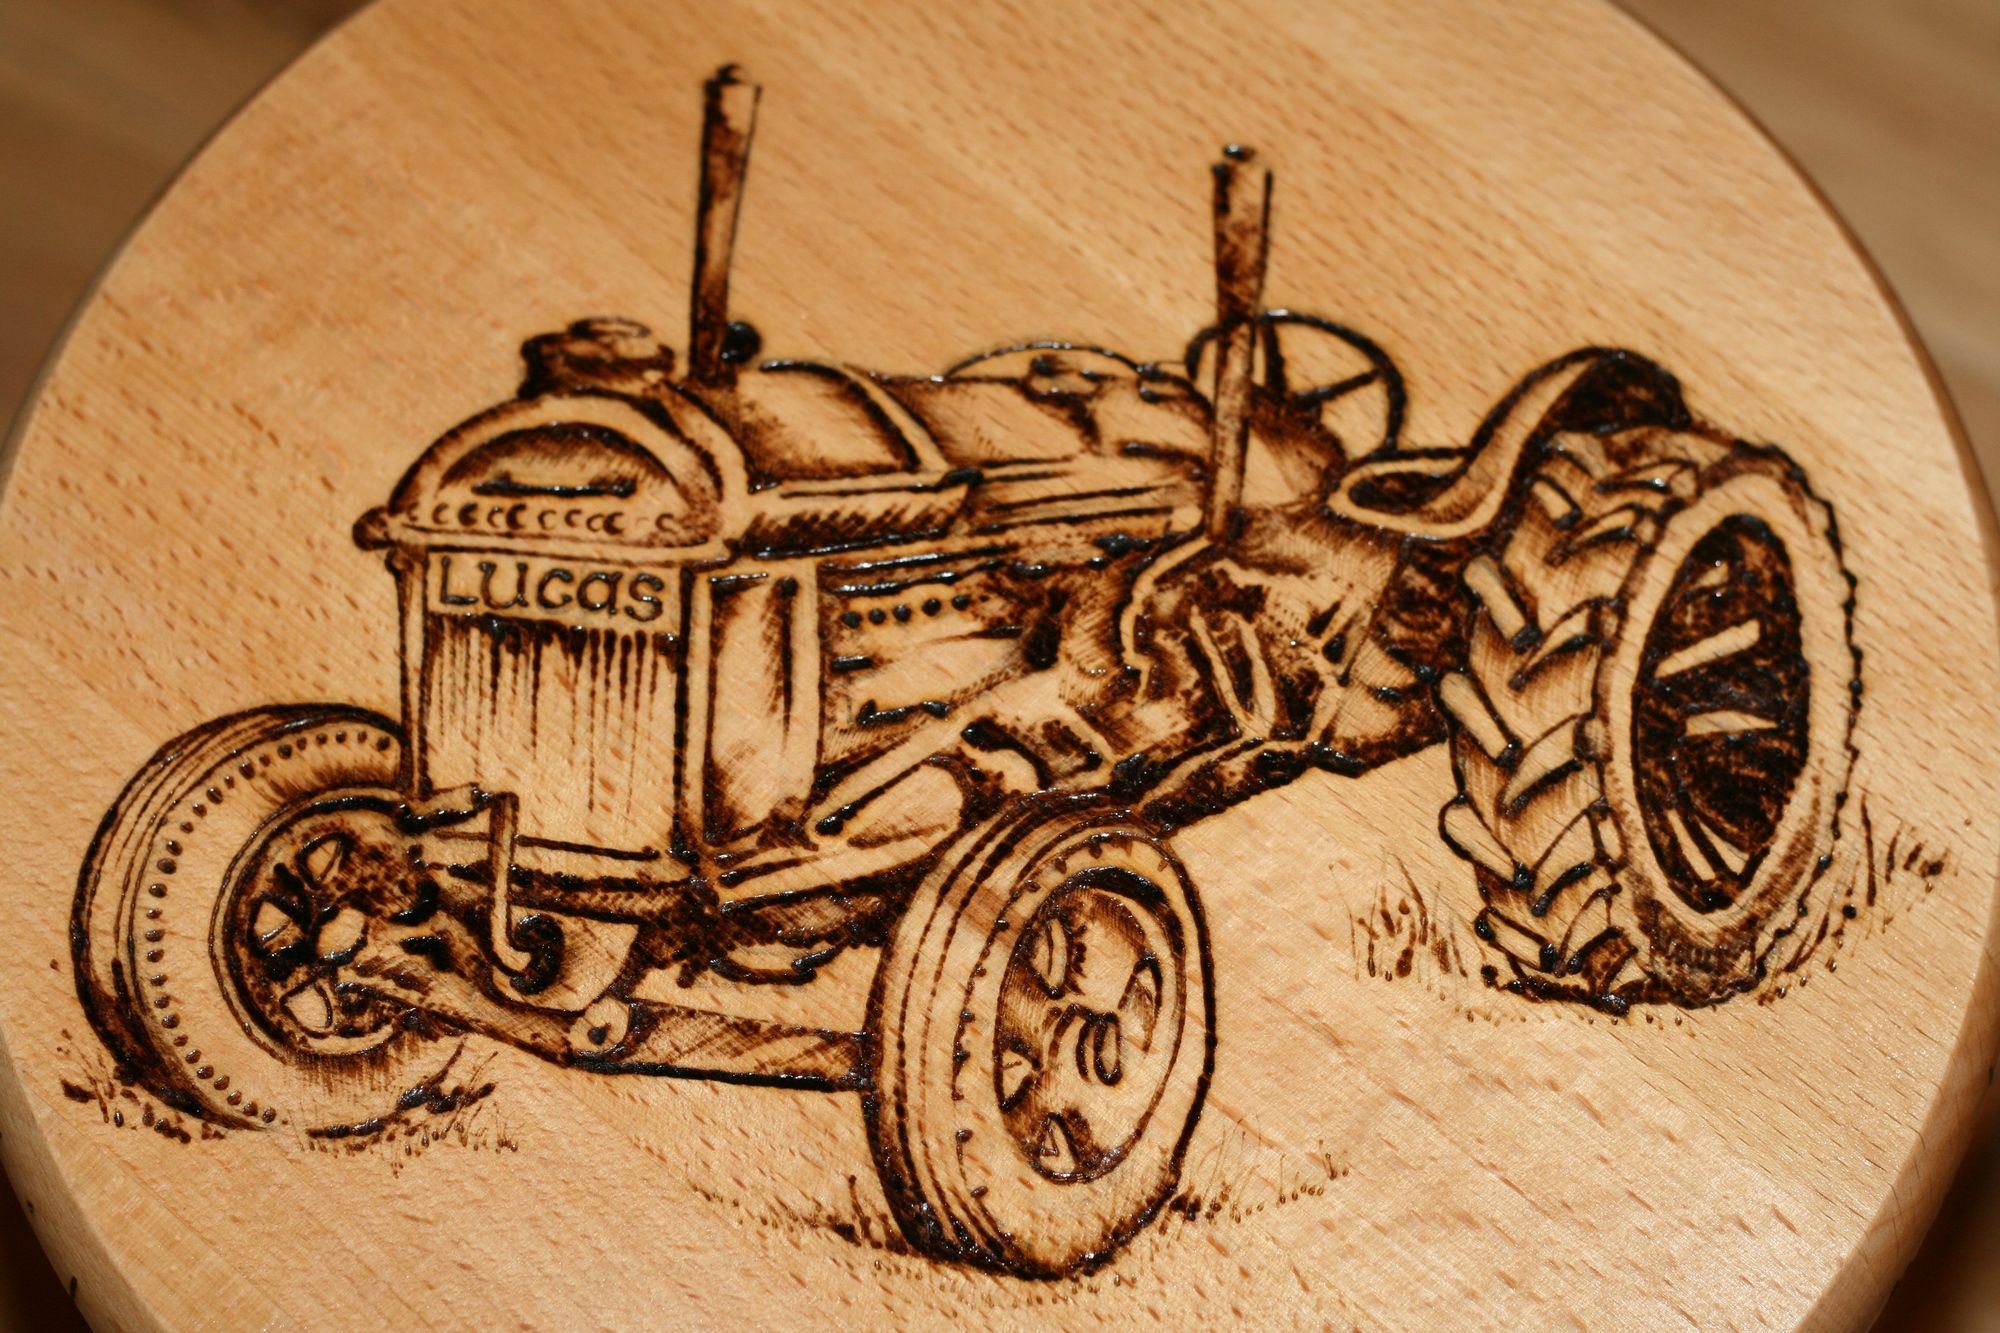 decorated with pyrography | art of decorating by burning designs into wood or leather objects